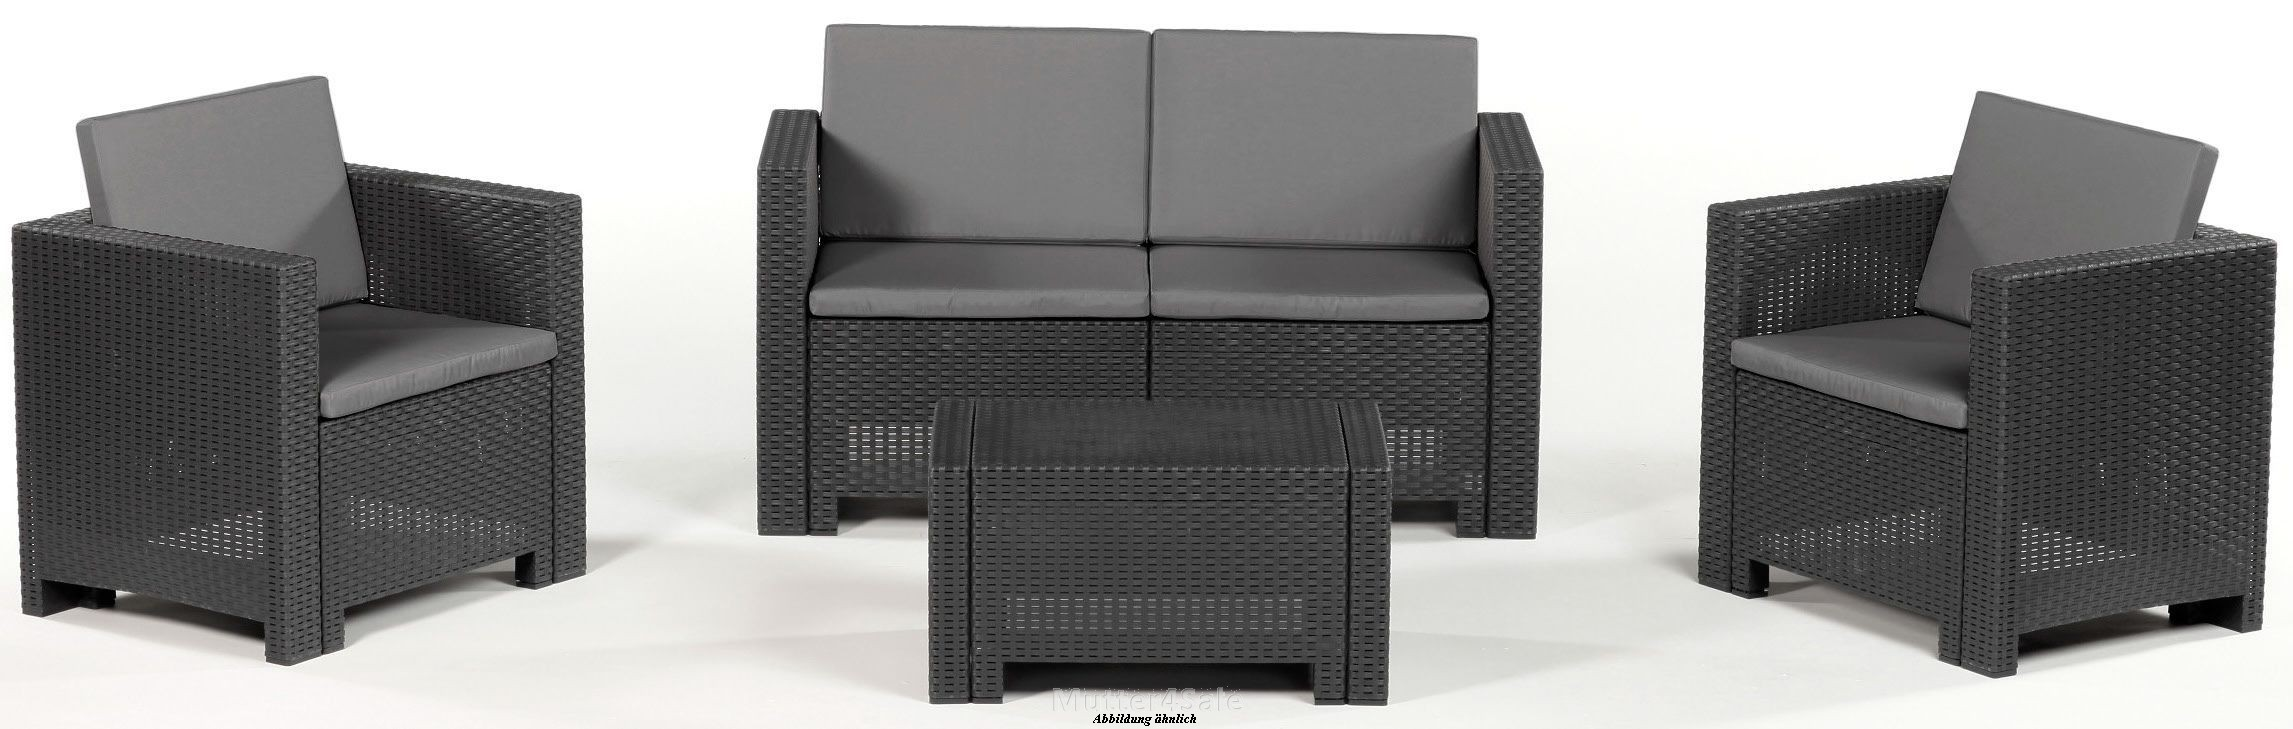 allibert sitzgruppe cannes lounge set gartenm bel poly. Black Bedroom Furniture Sets. Home Design Ideas